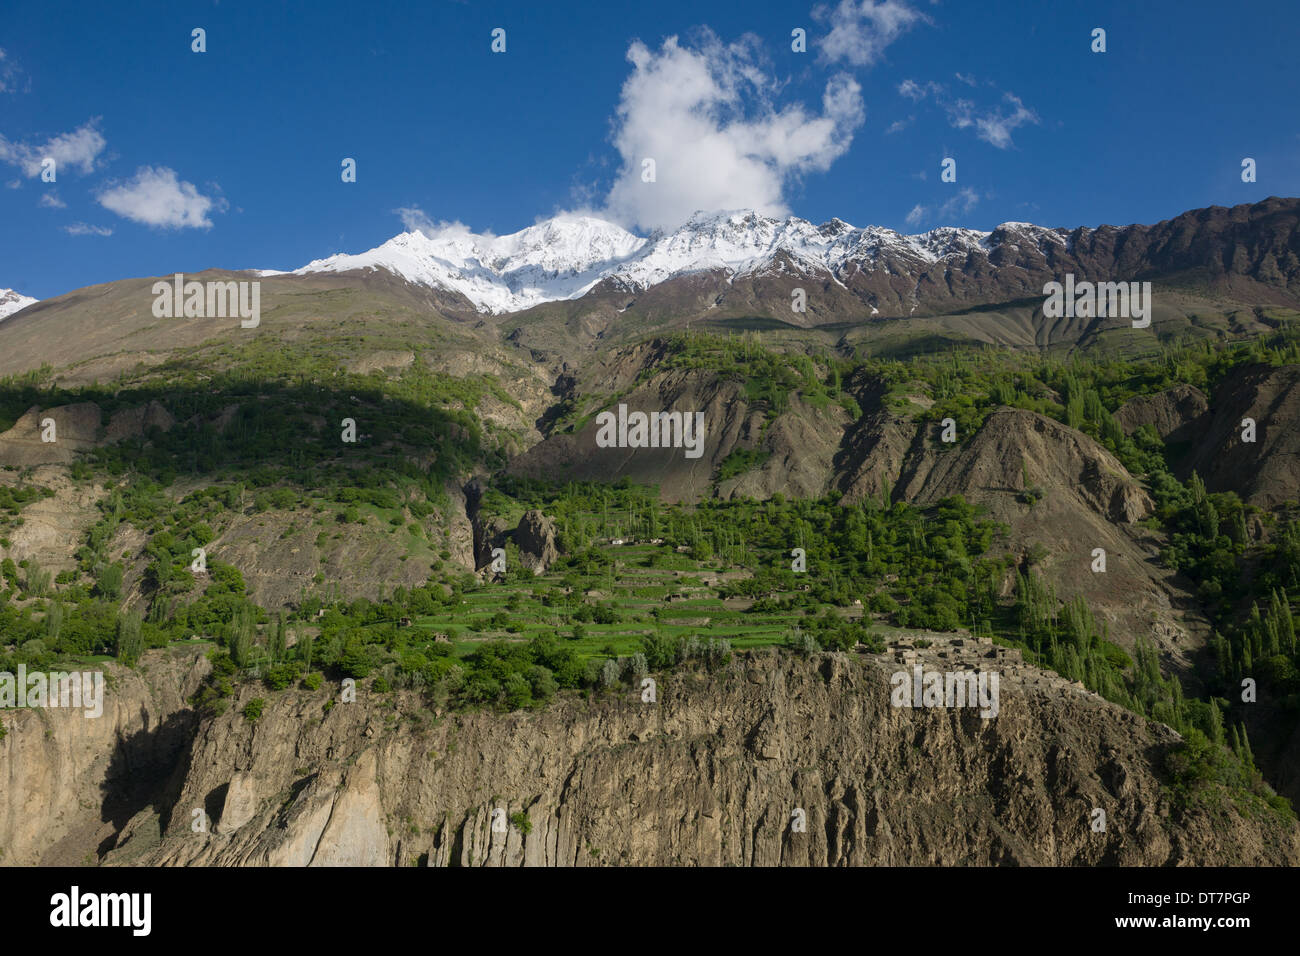 Village and terraces built into the side of a steep valley, with the snow-capped Rakaposhi range behind, seen from the Karakoram Highway between the Hunza Valley and Gilgit, Gilgit-Baltistan, Pakistan - Stock Image